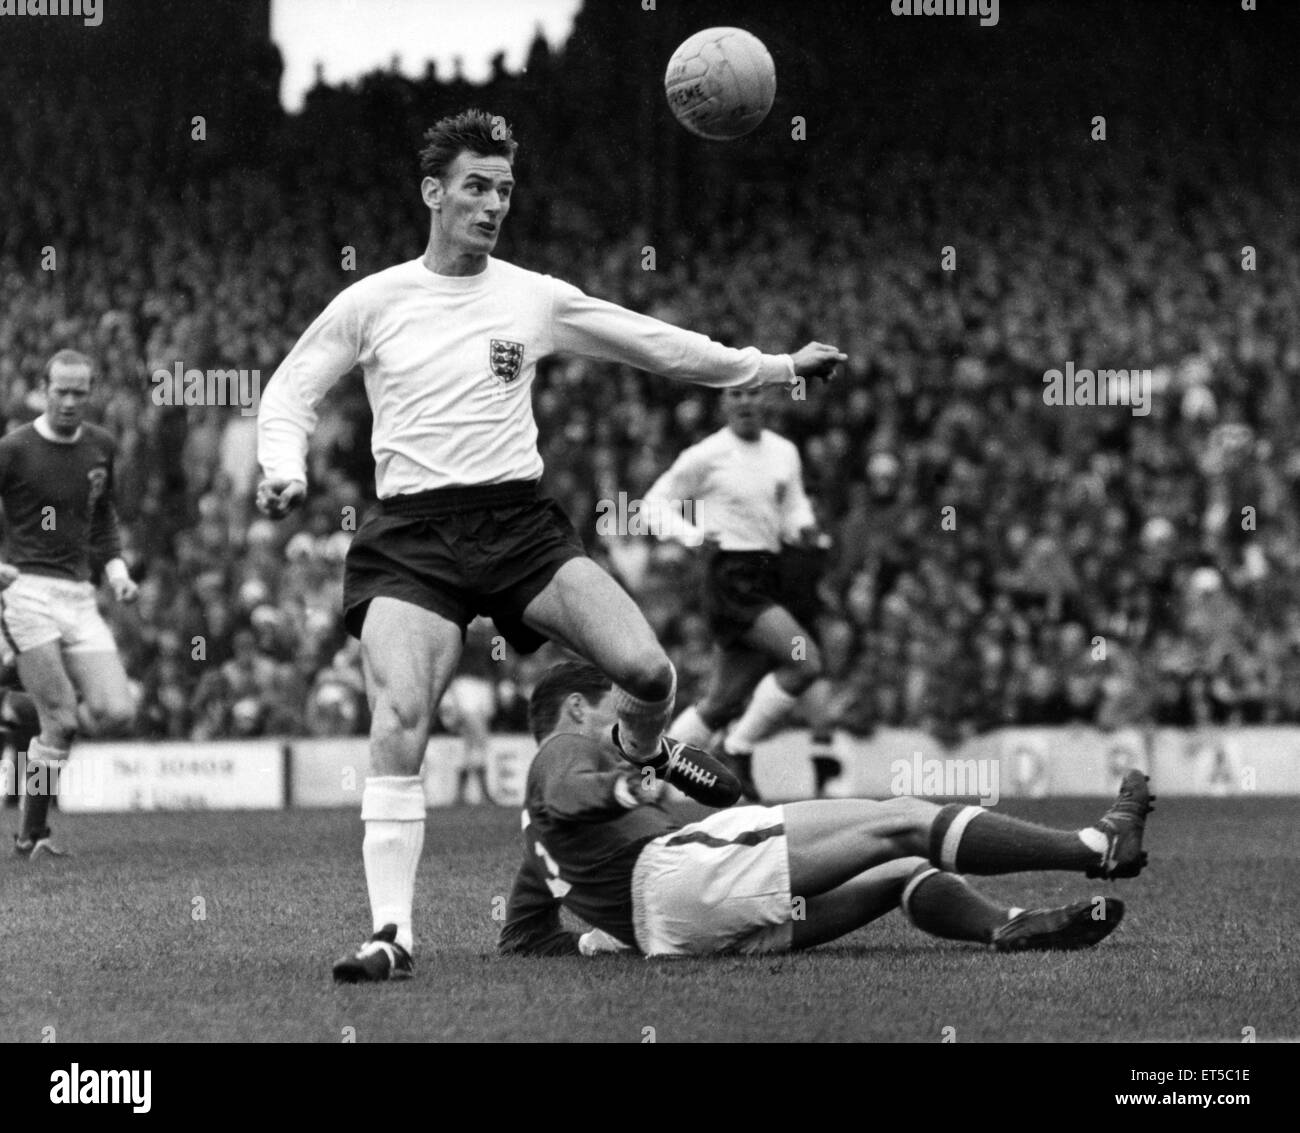 Alan Peacock, England's centre forward, in action. Wales v England. 2nd October 1965. - Stock Image